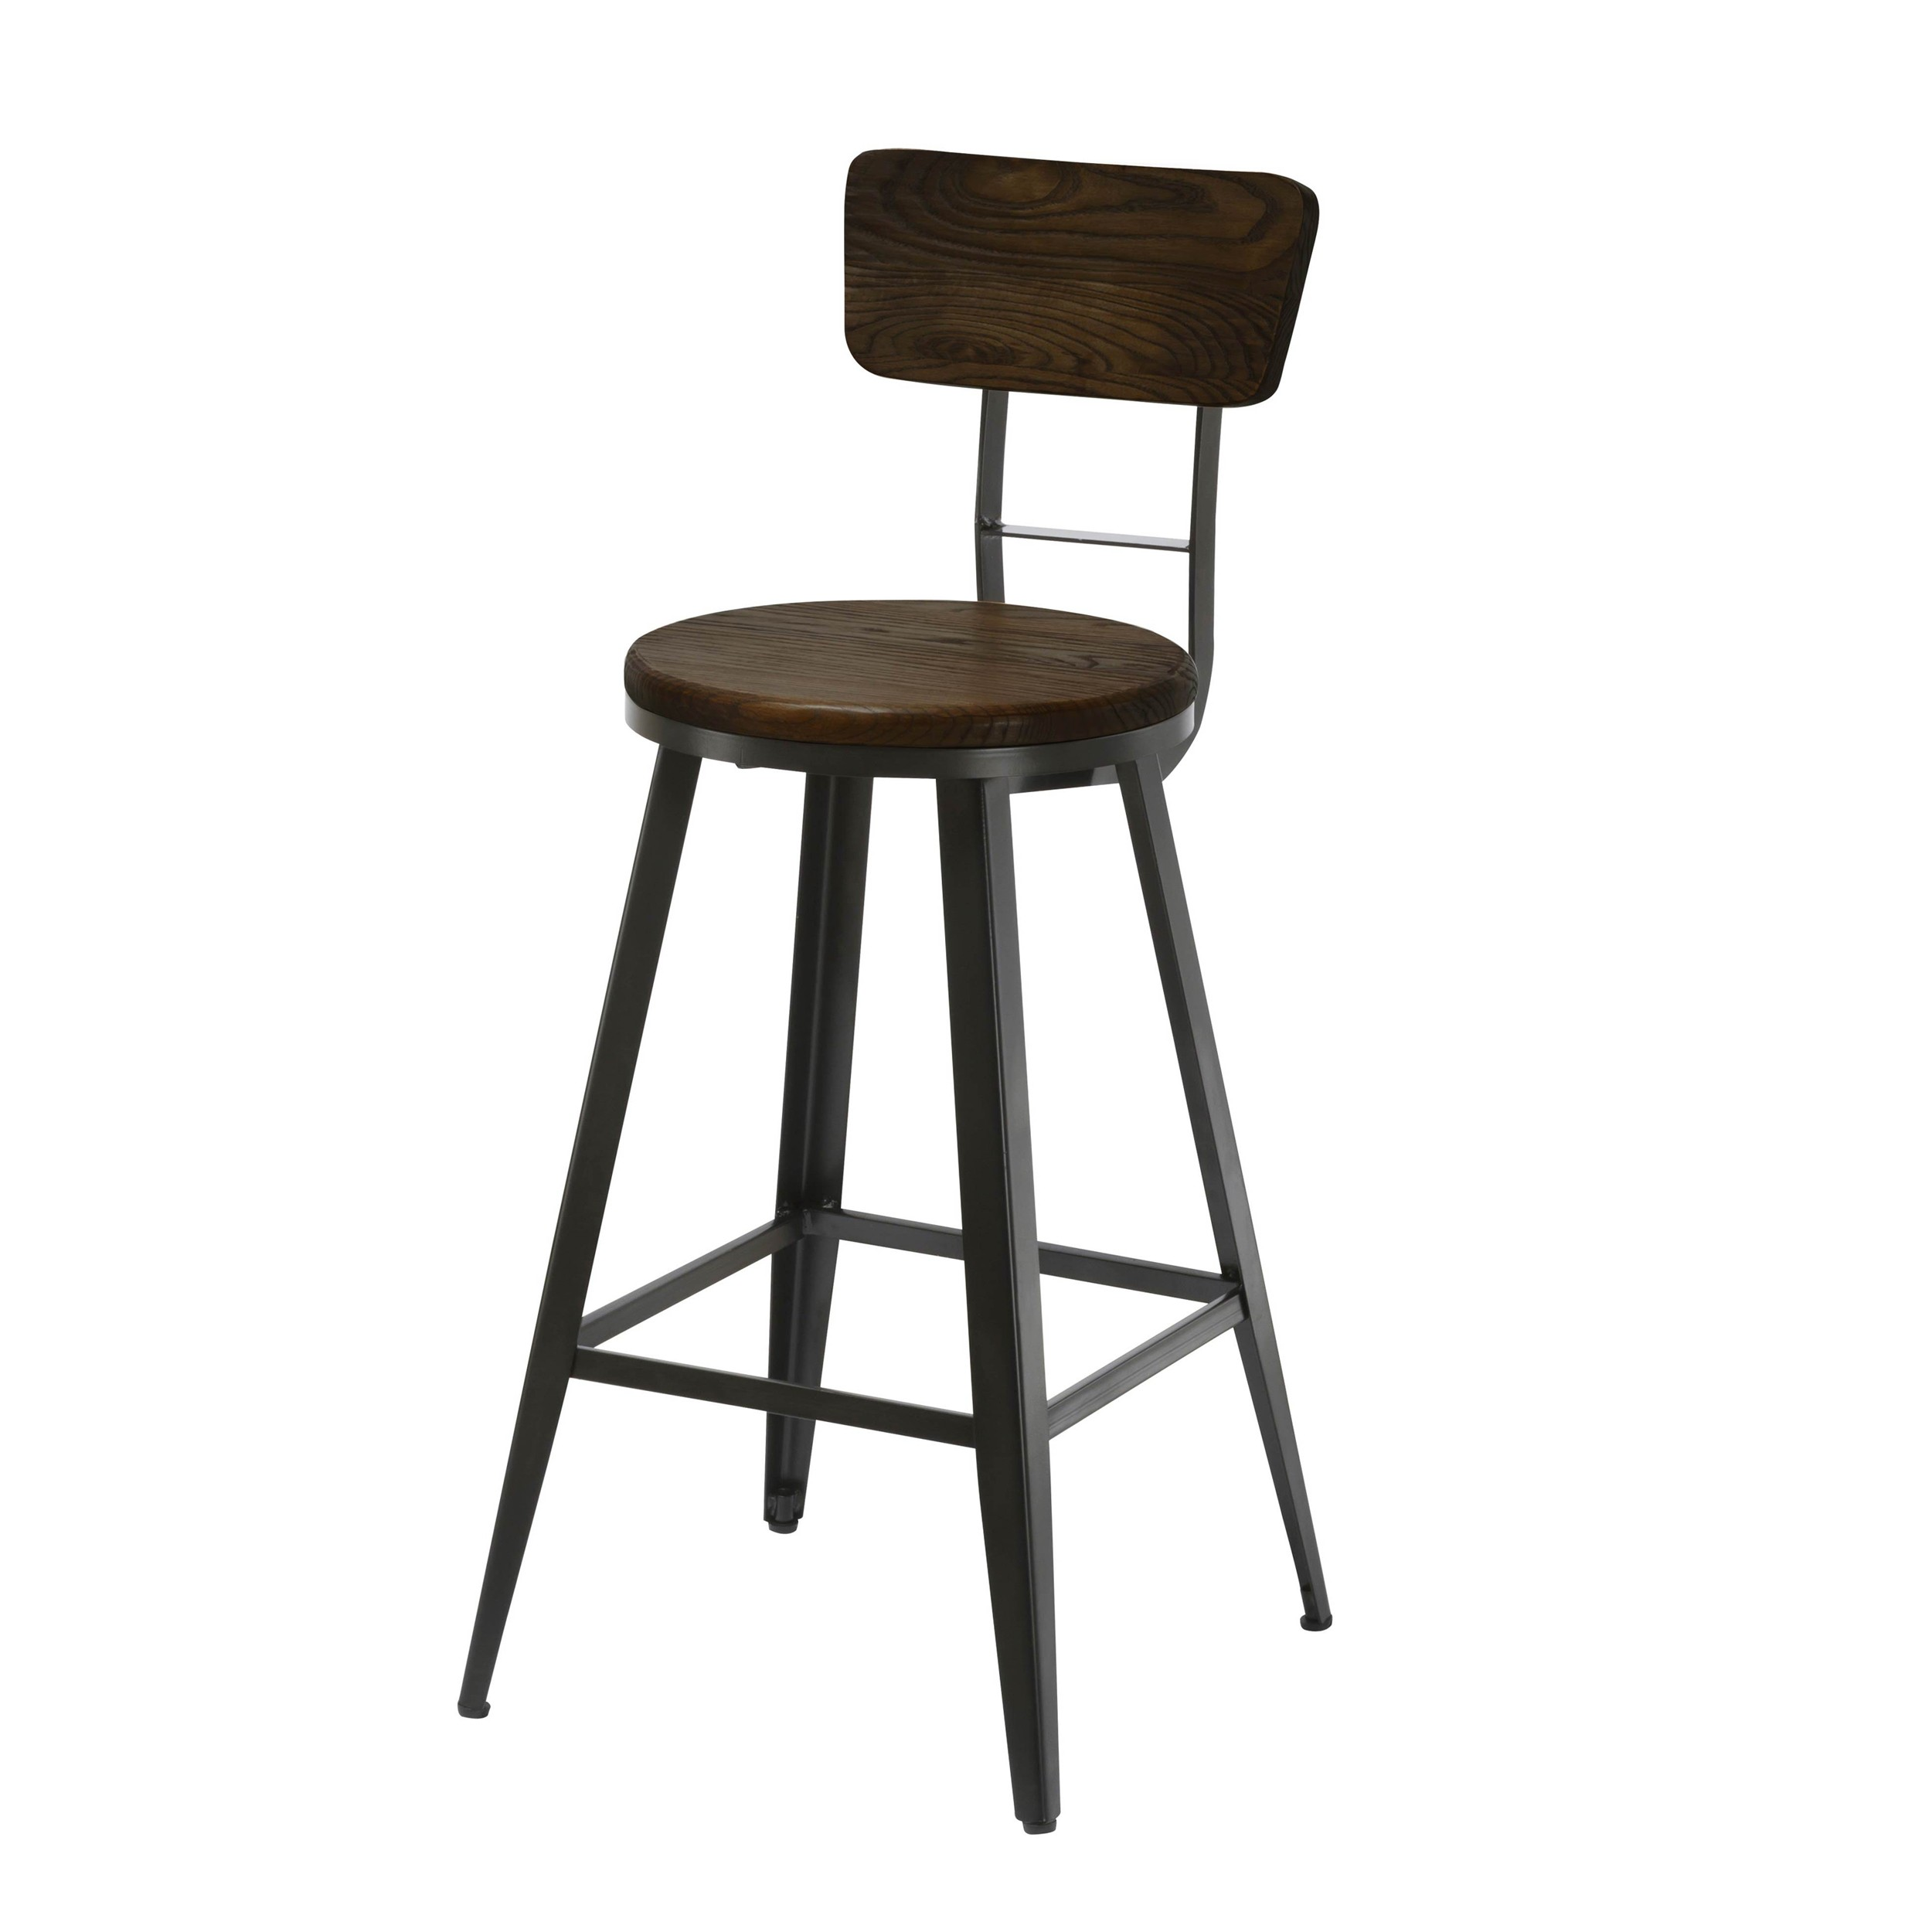 Tabouret de bar confort